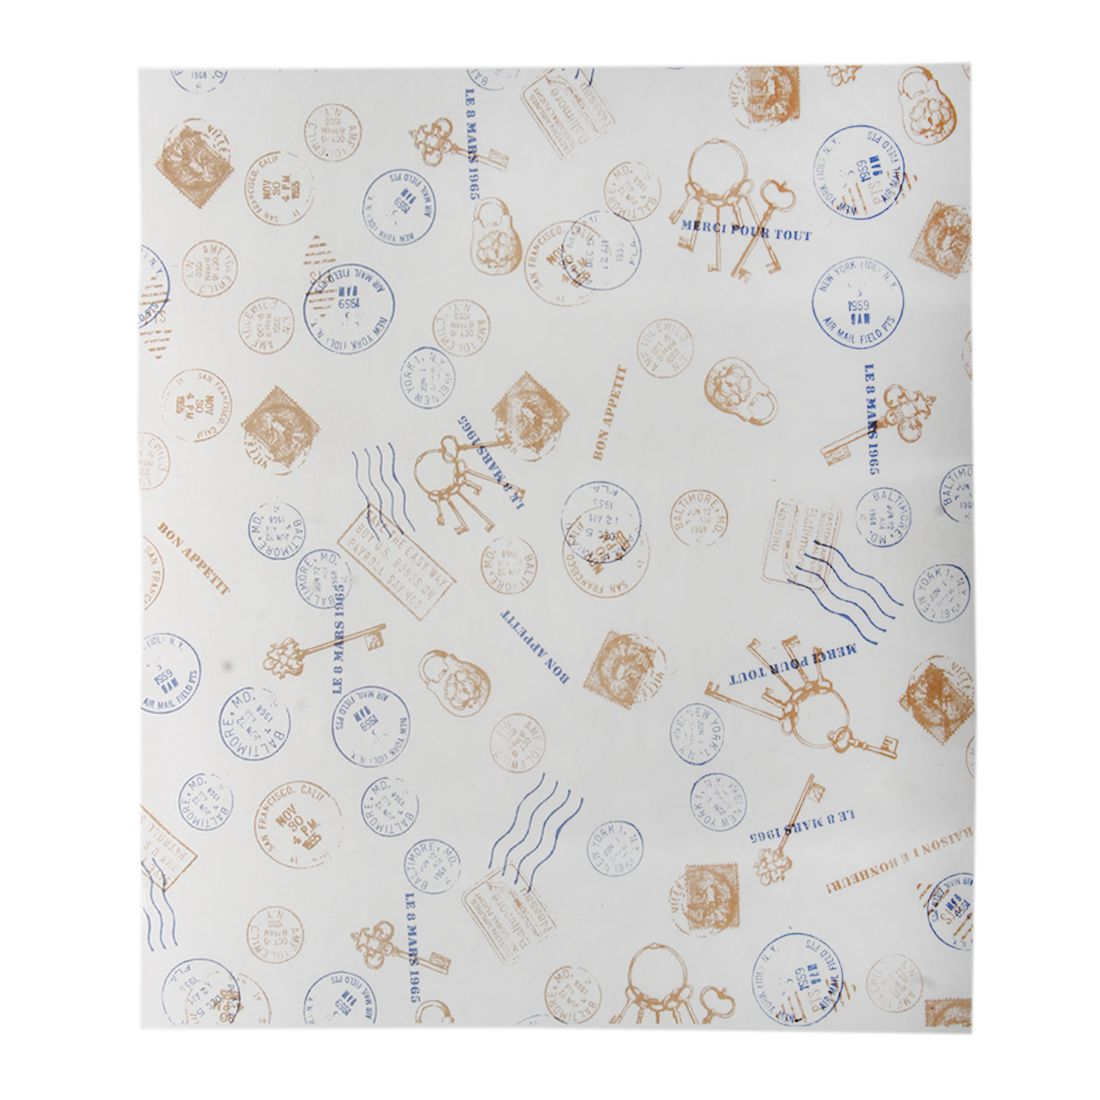 Wax Paper Food Wrapping Paper Greaseproof Baking Paper Soap Packaging Paper Oil standard key models